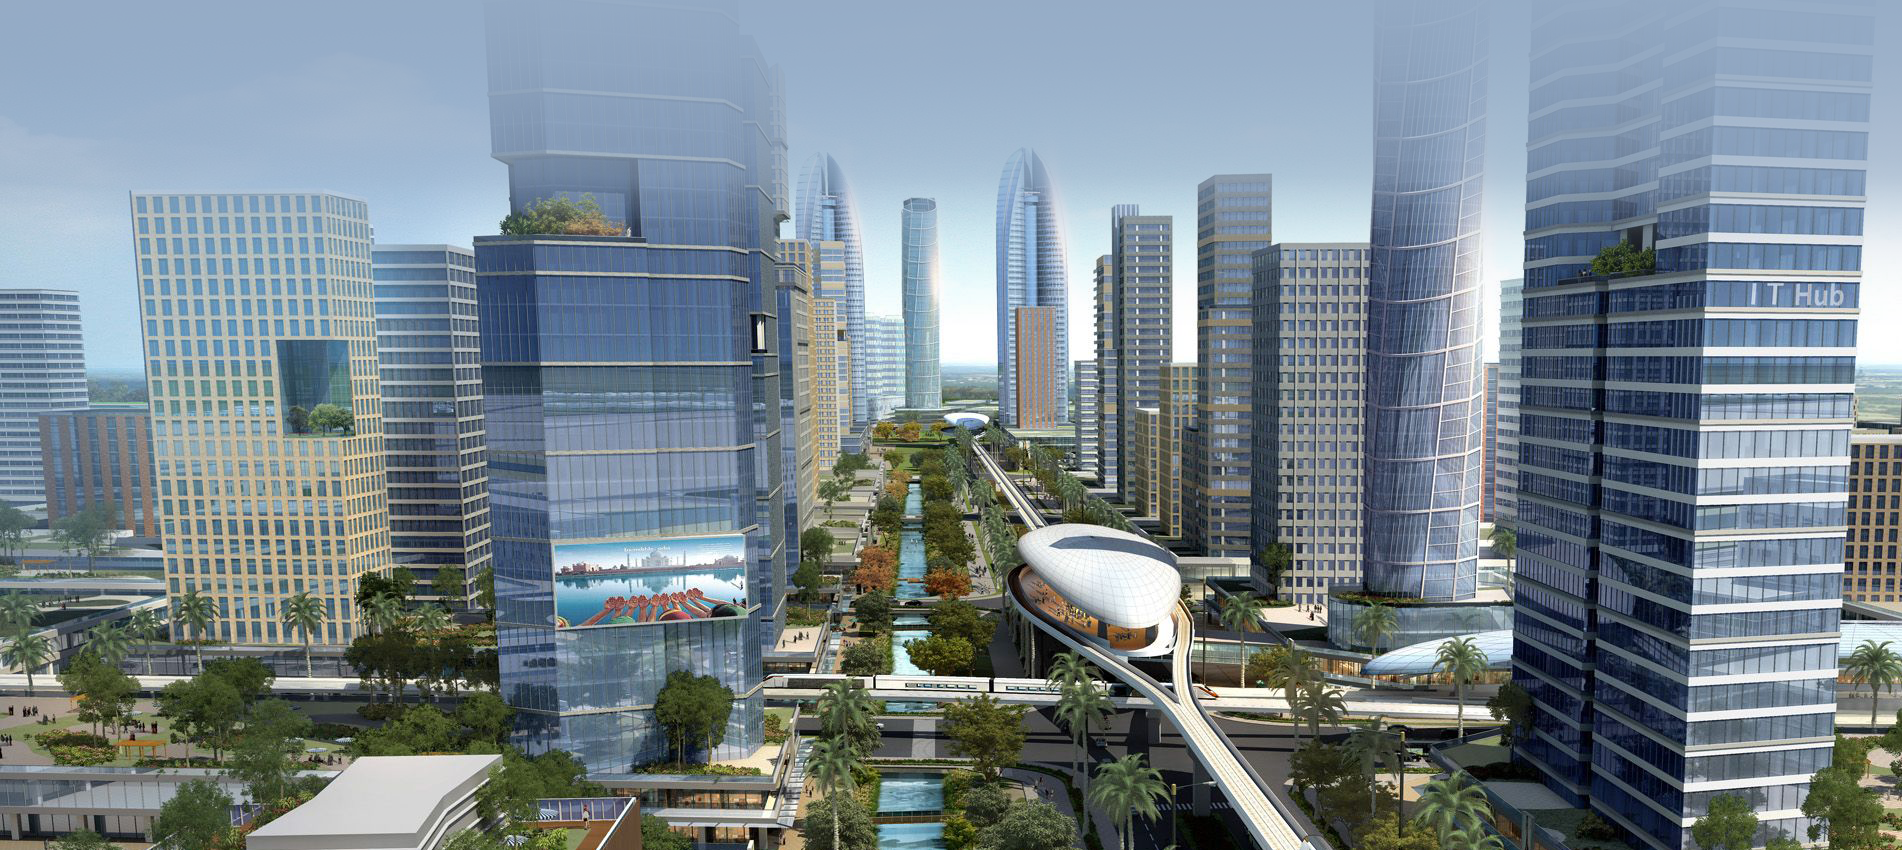 Singapore has been involved in helping Andhra Pradesh build its capital city Amaravati.